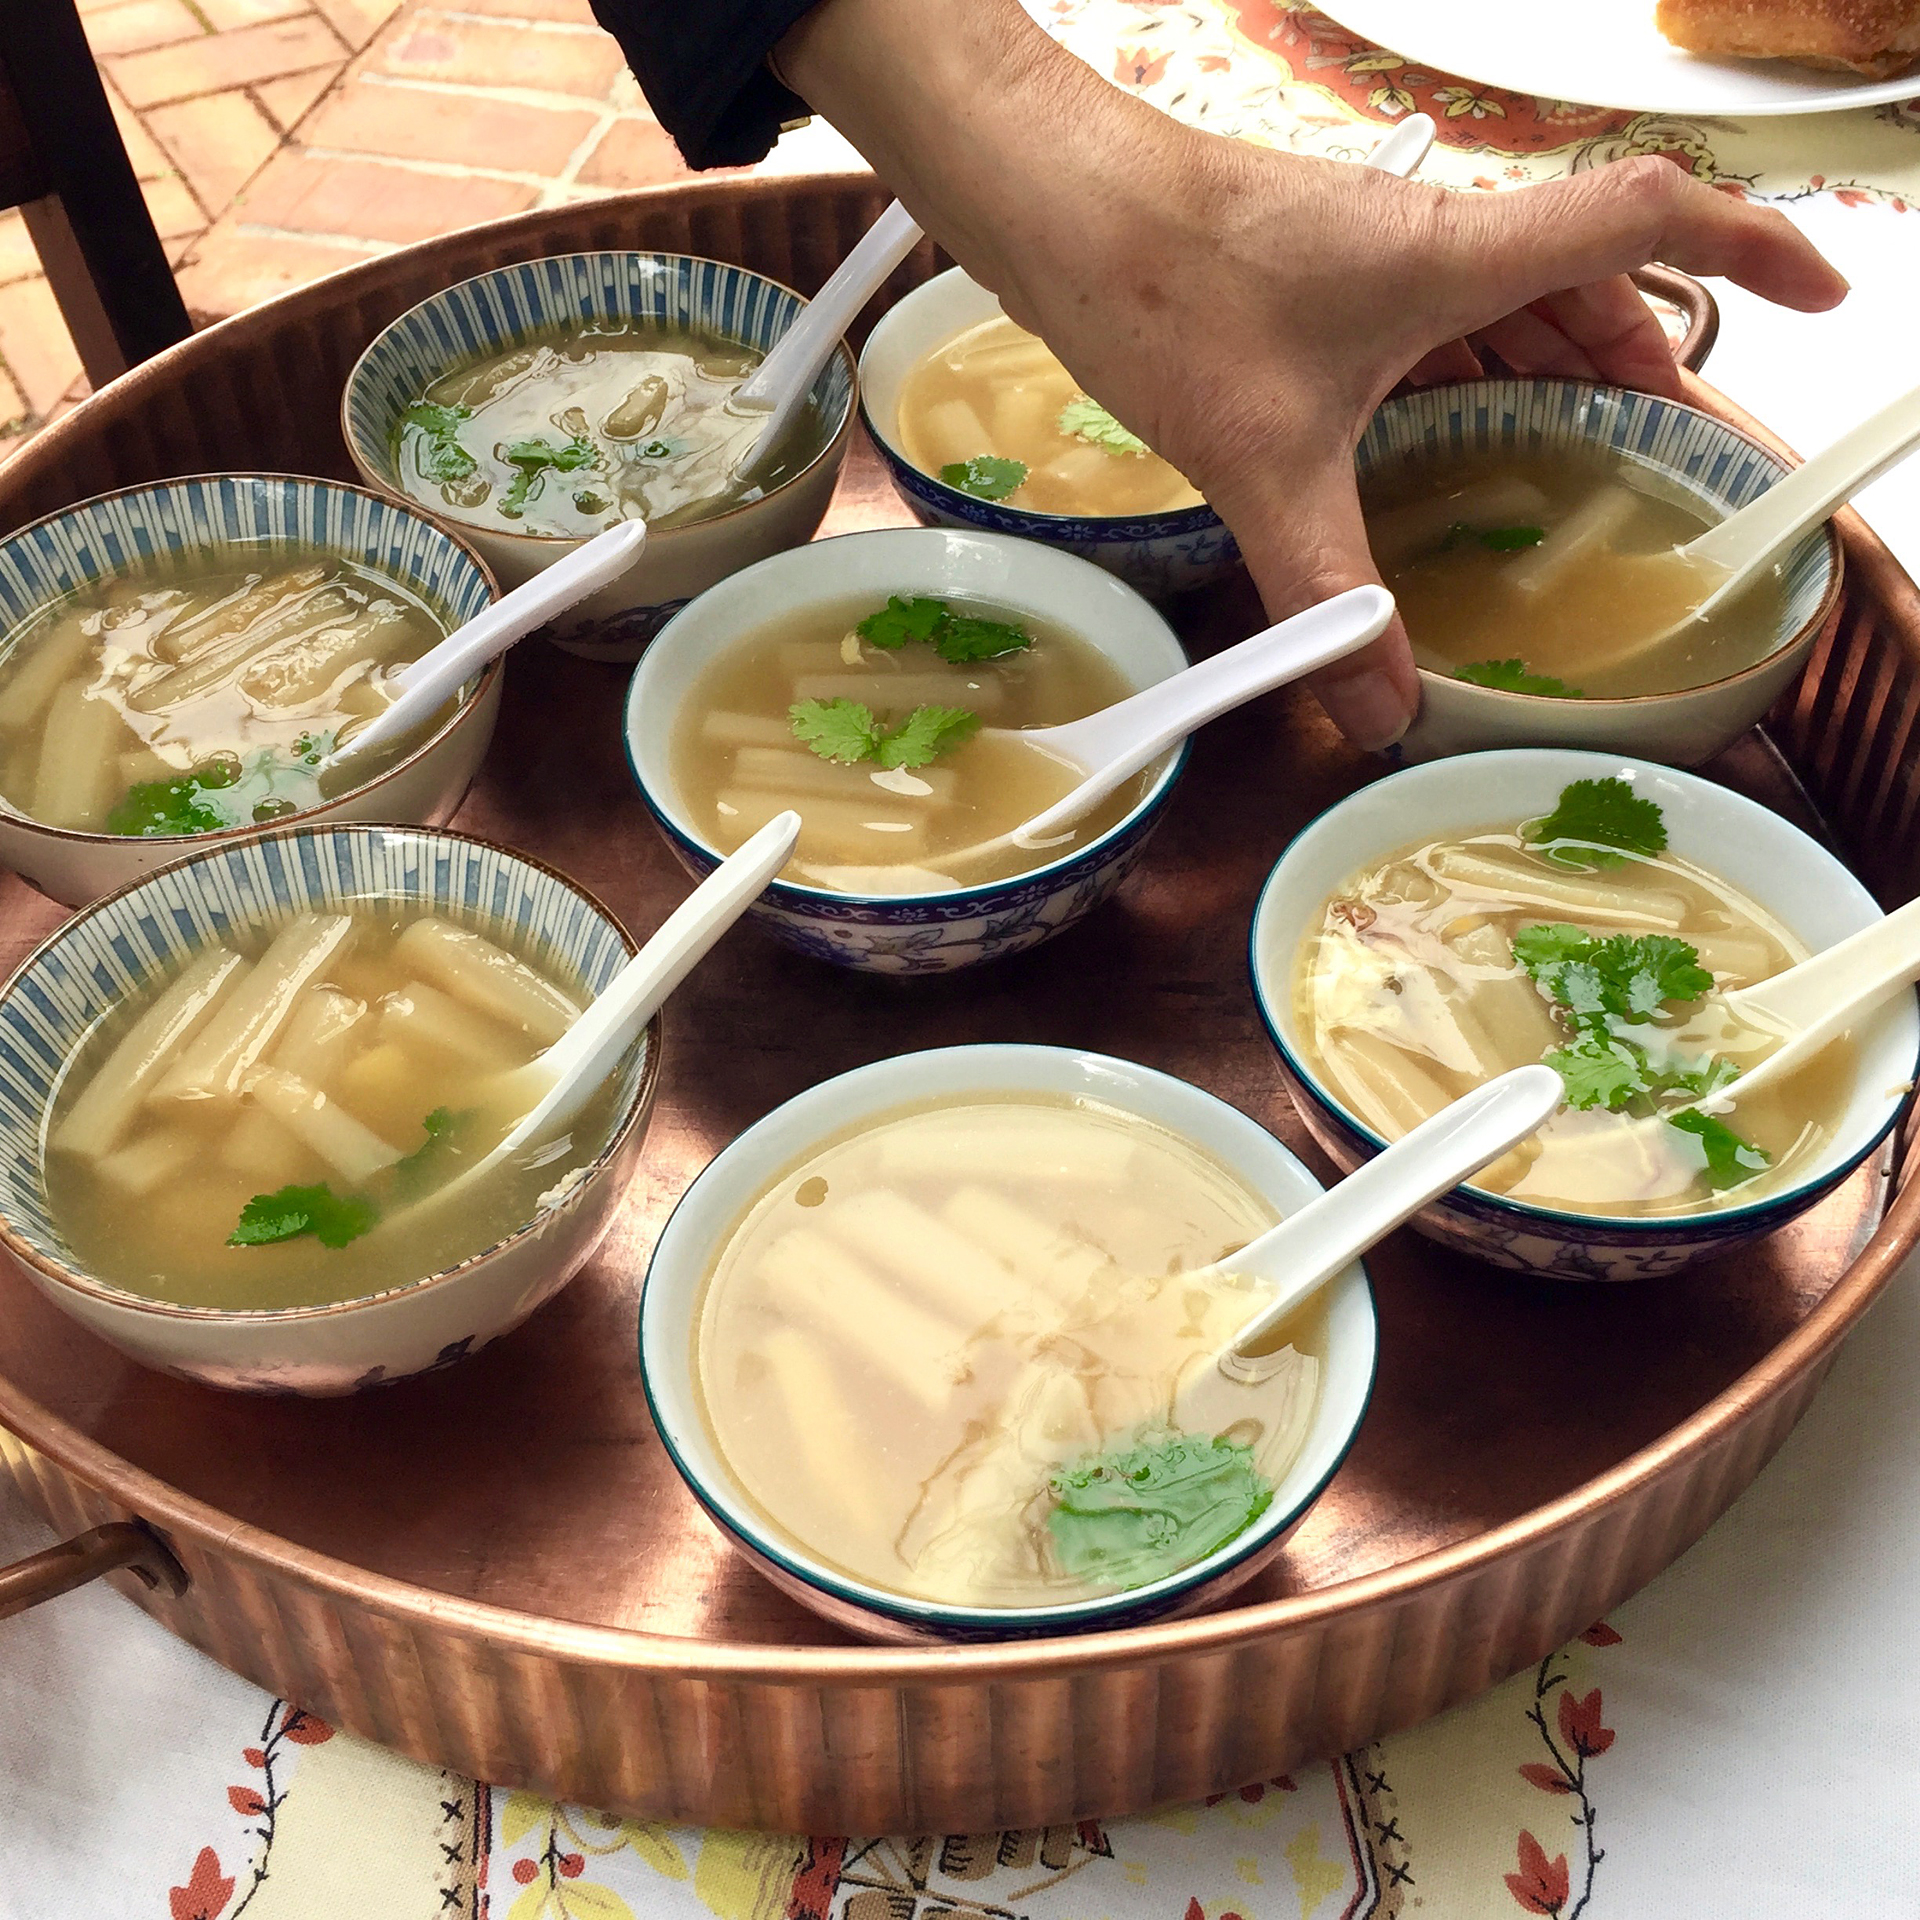 Crab and asparagus soup, a traditional dish for Vietnamese weddings.